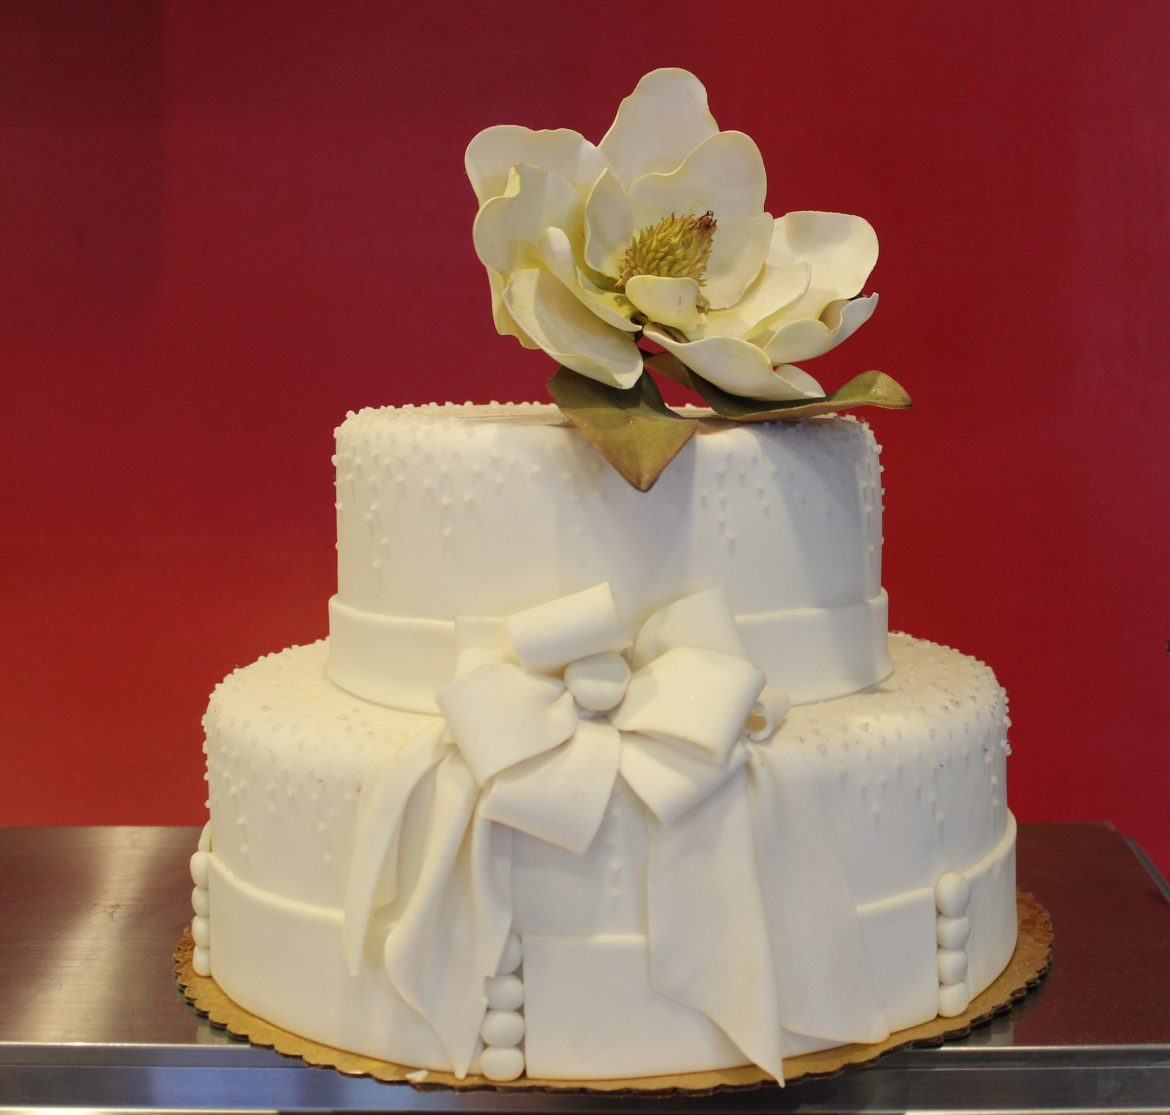 Cake Designs High Quality Images